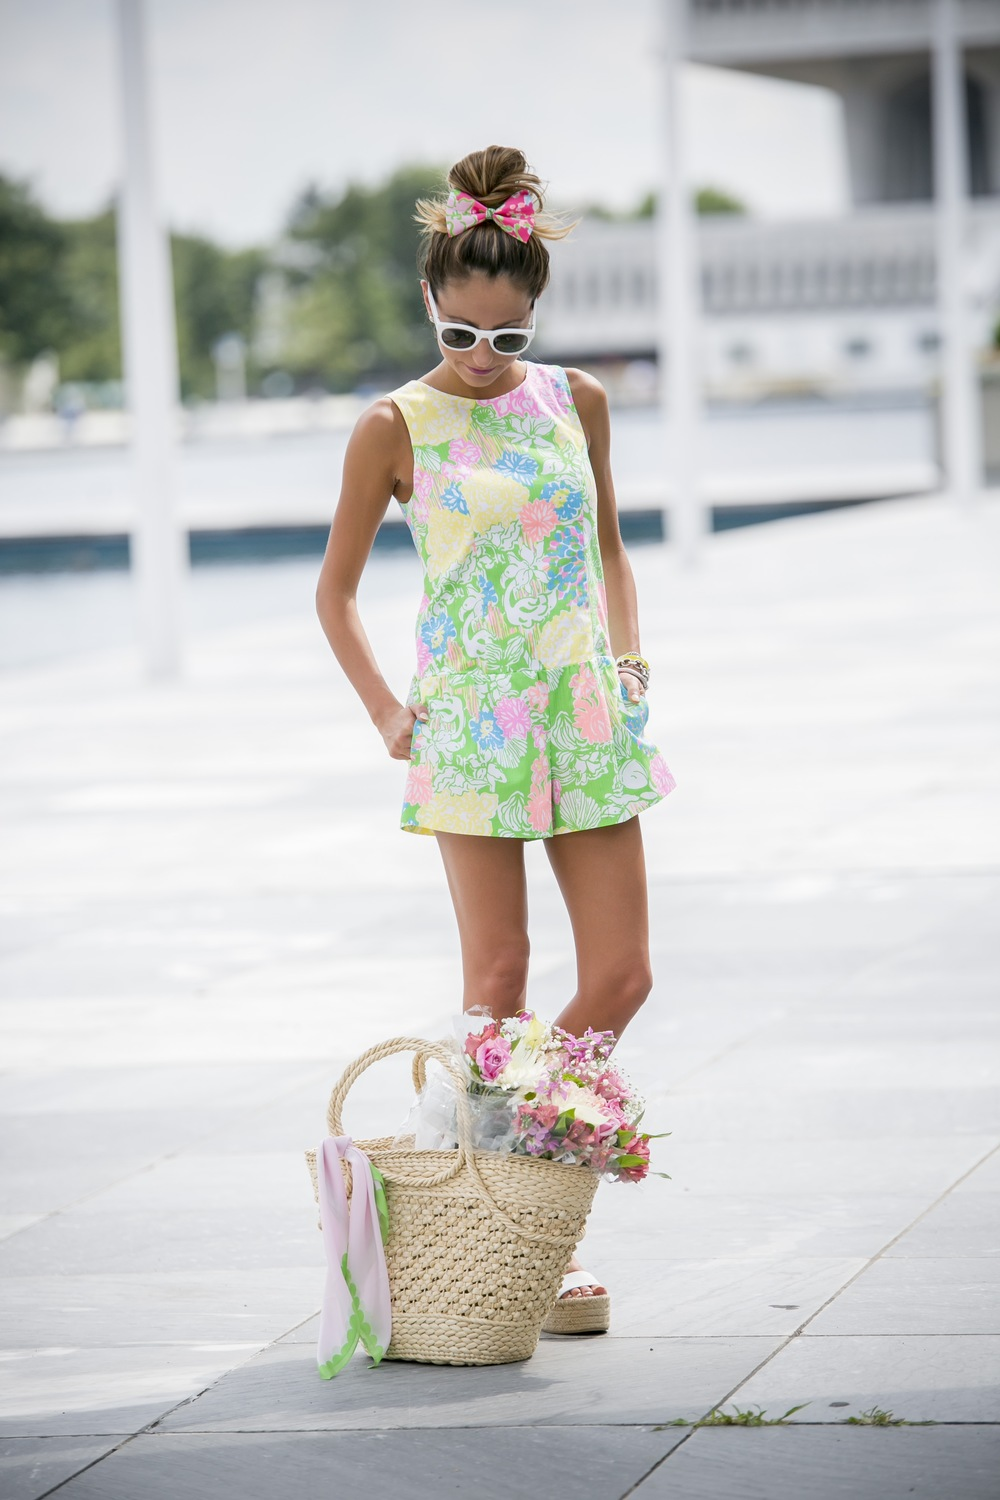 Lilly Pulitzer romper and bow